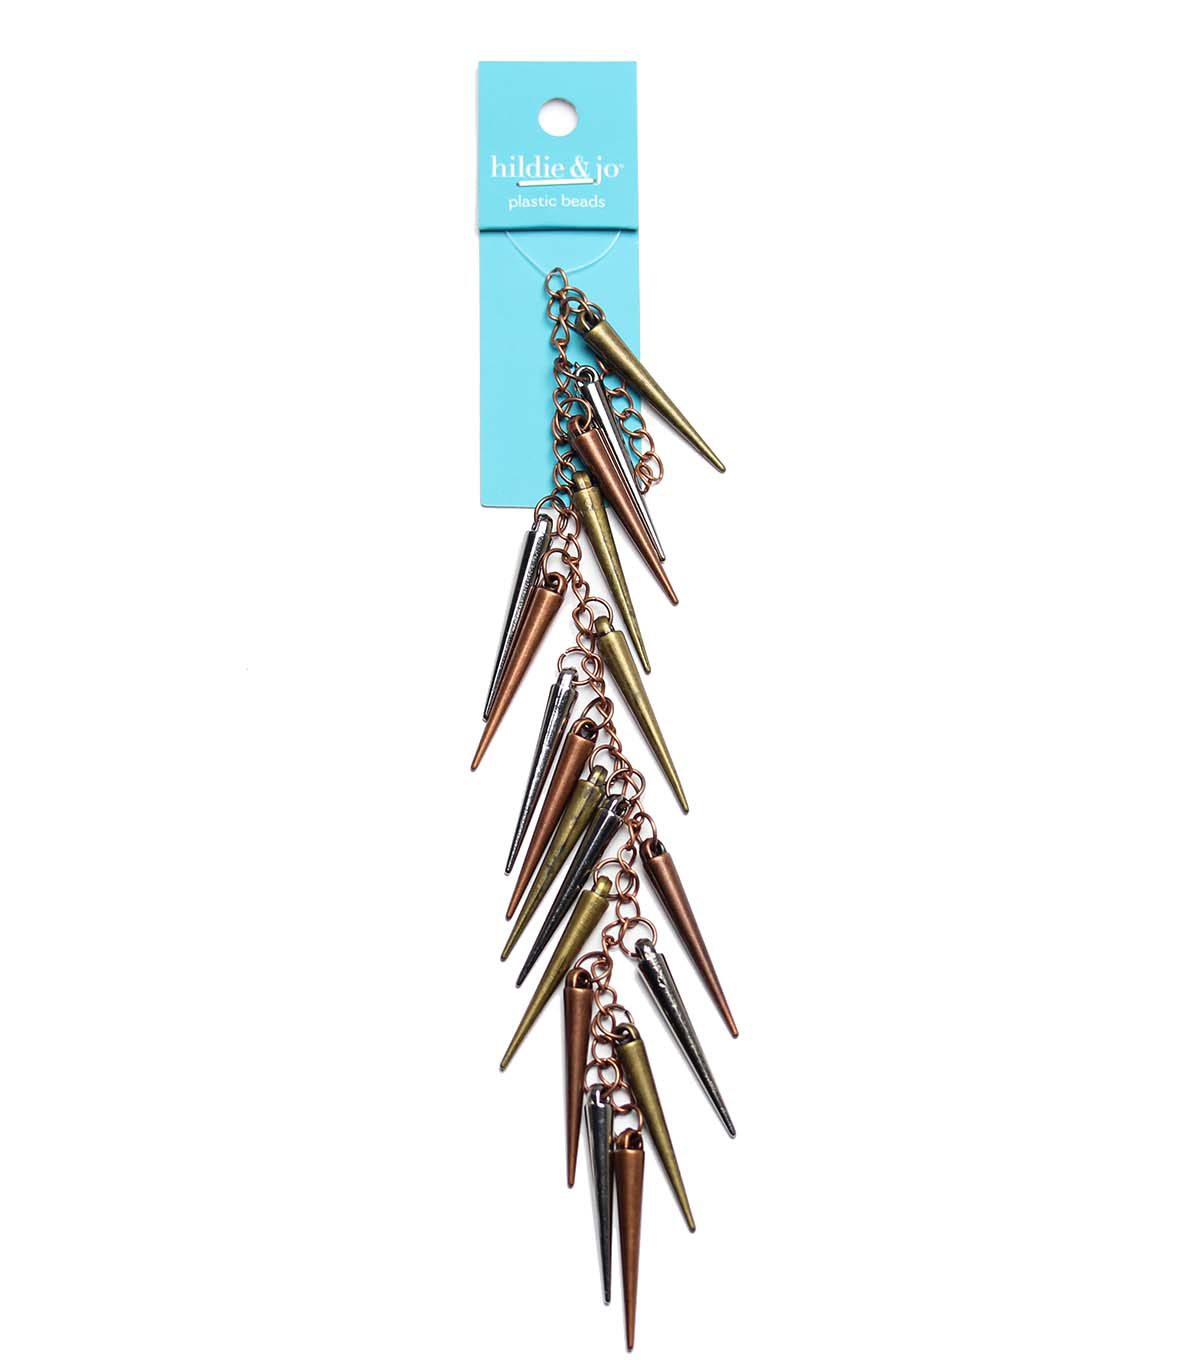 hildie & jo Strung Beads-Multi Plated Small Cone